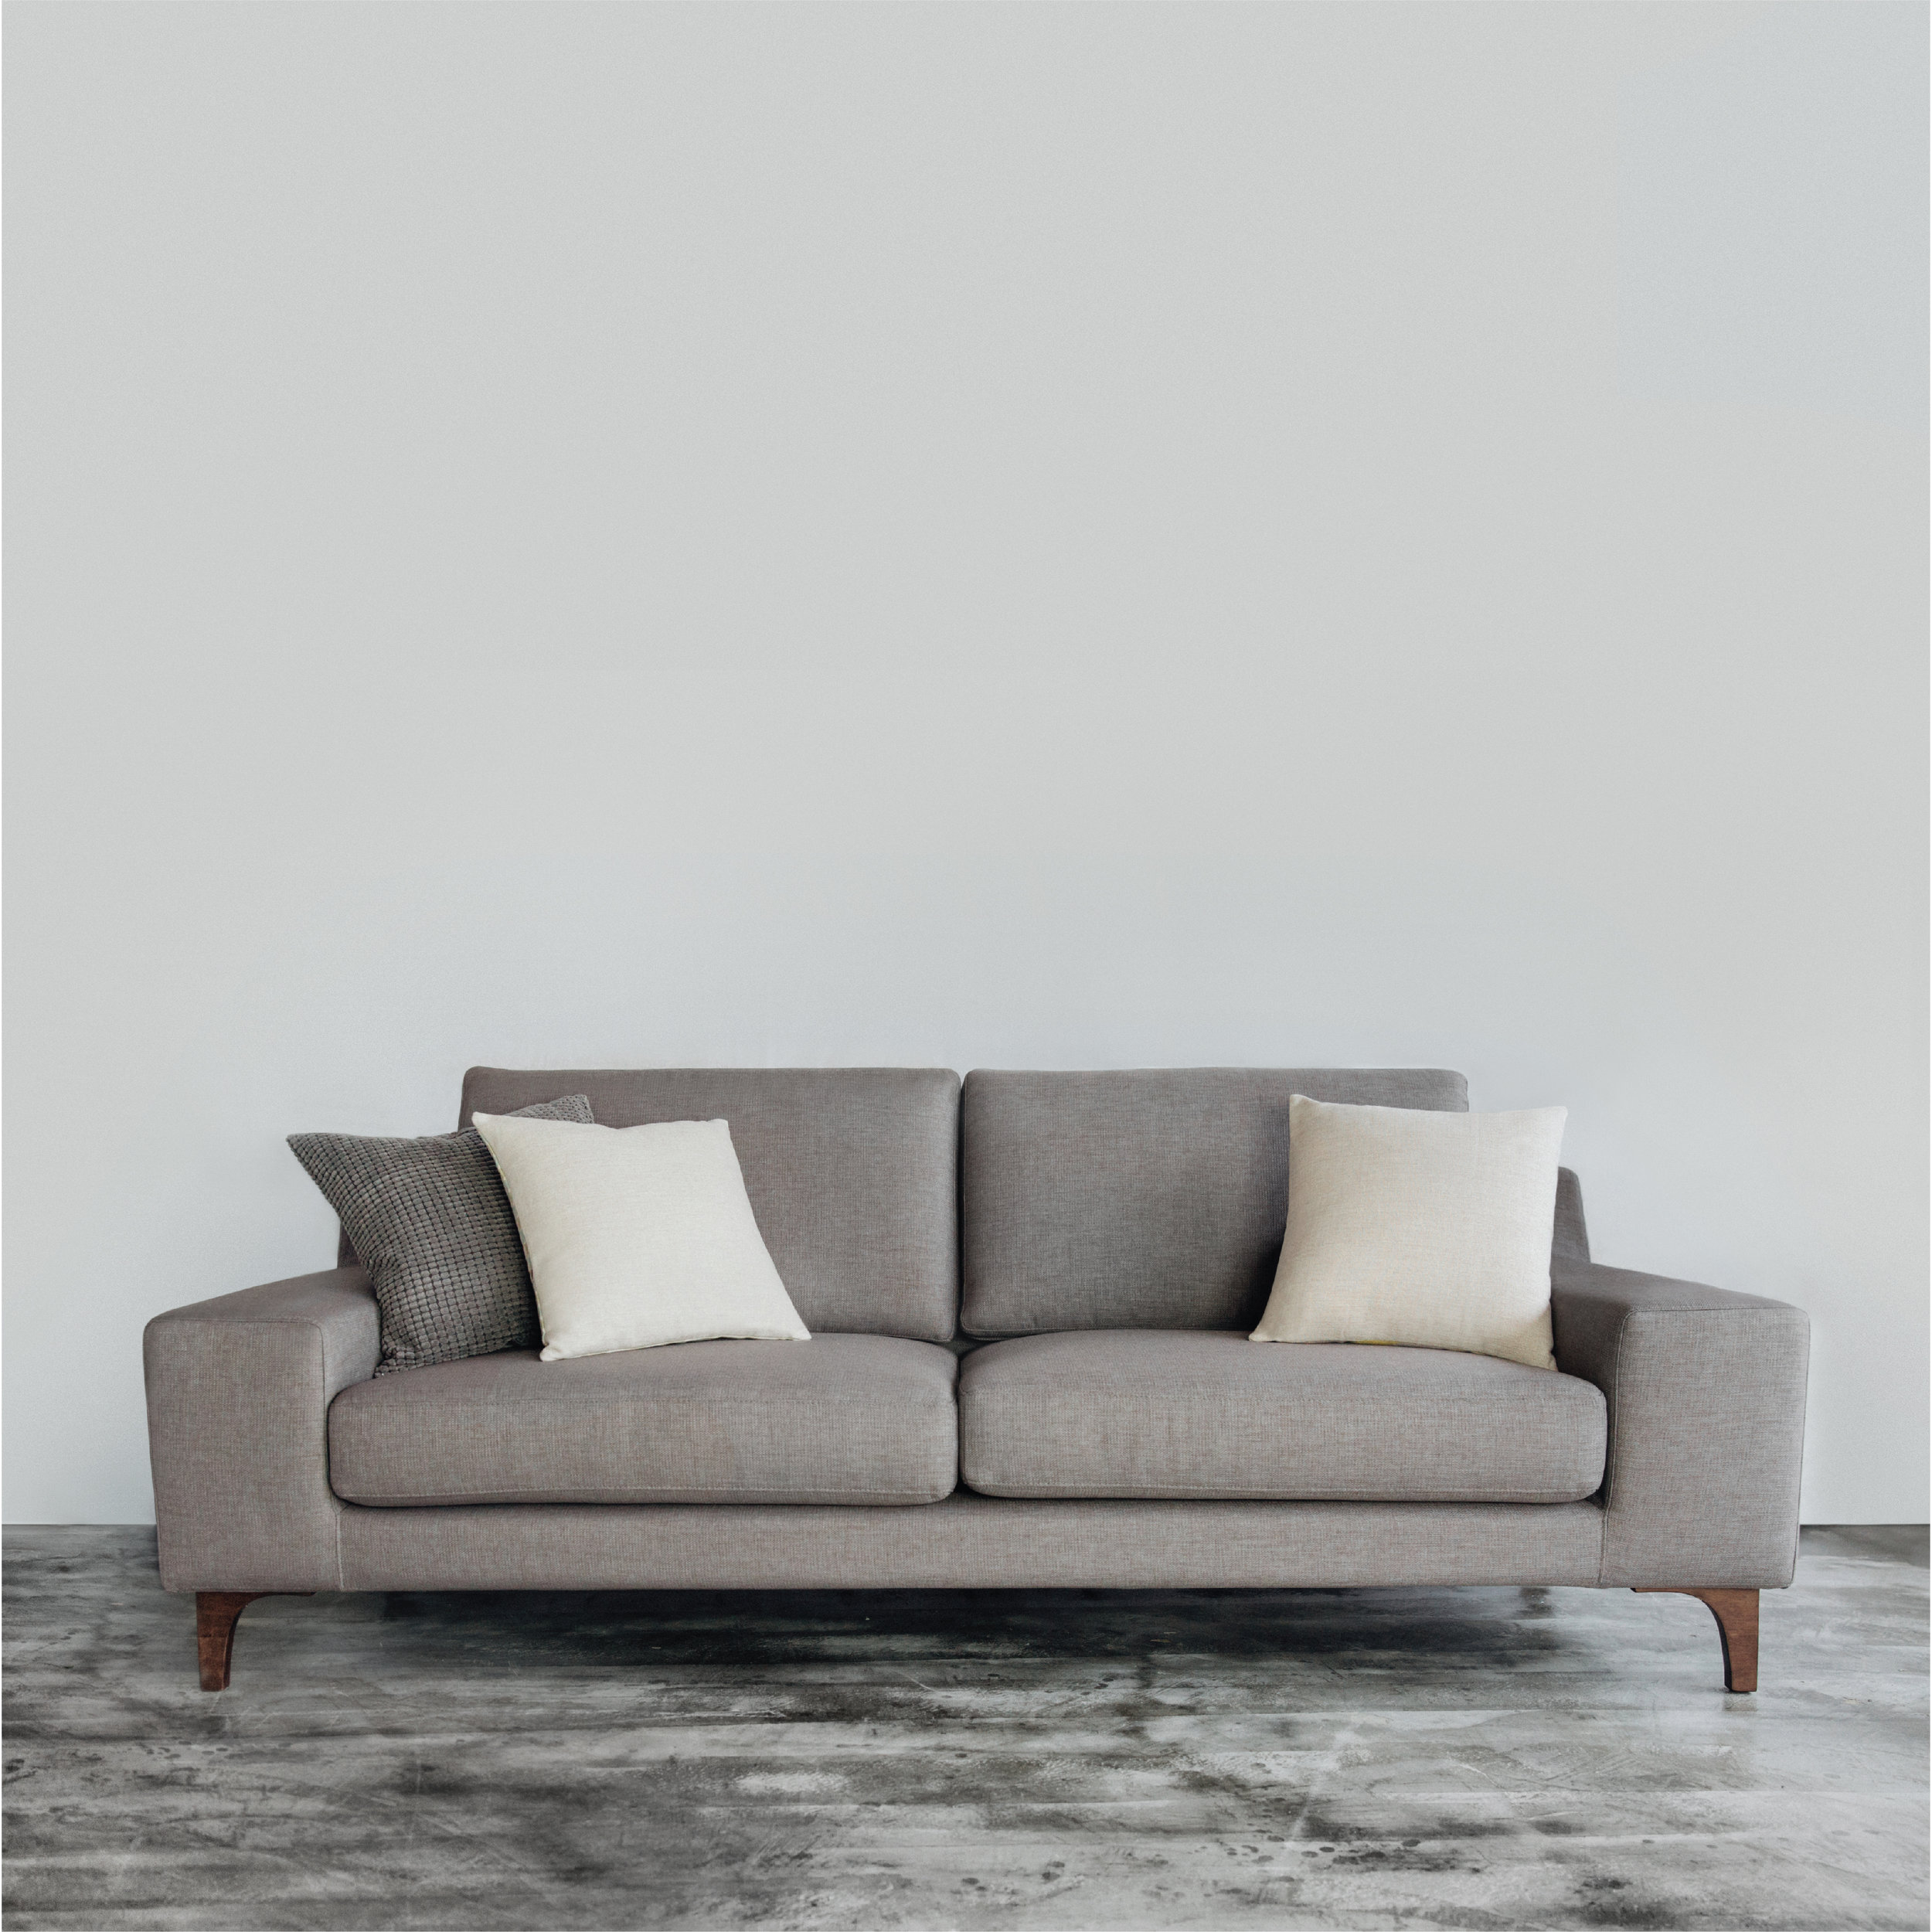 sofa furniture singapore slumberland como bed grande greyhammer quality designer fabric customisable fully removable and leather